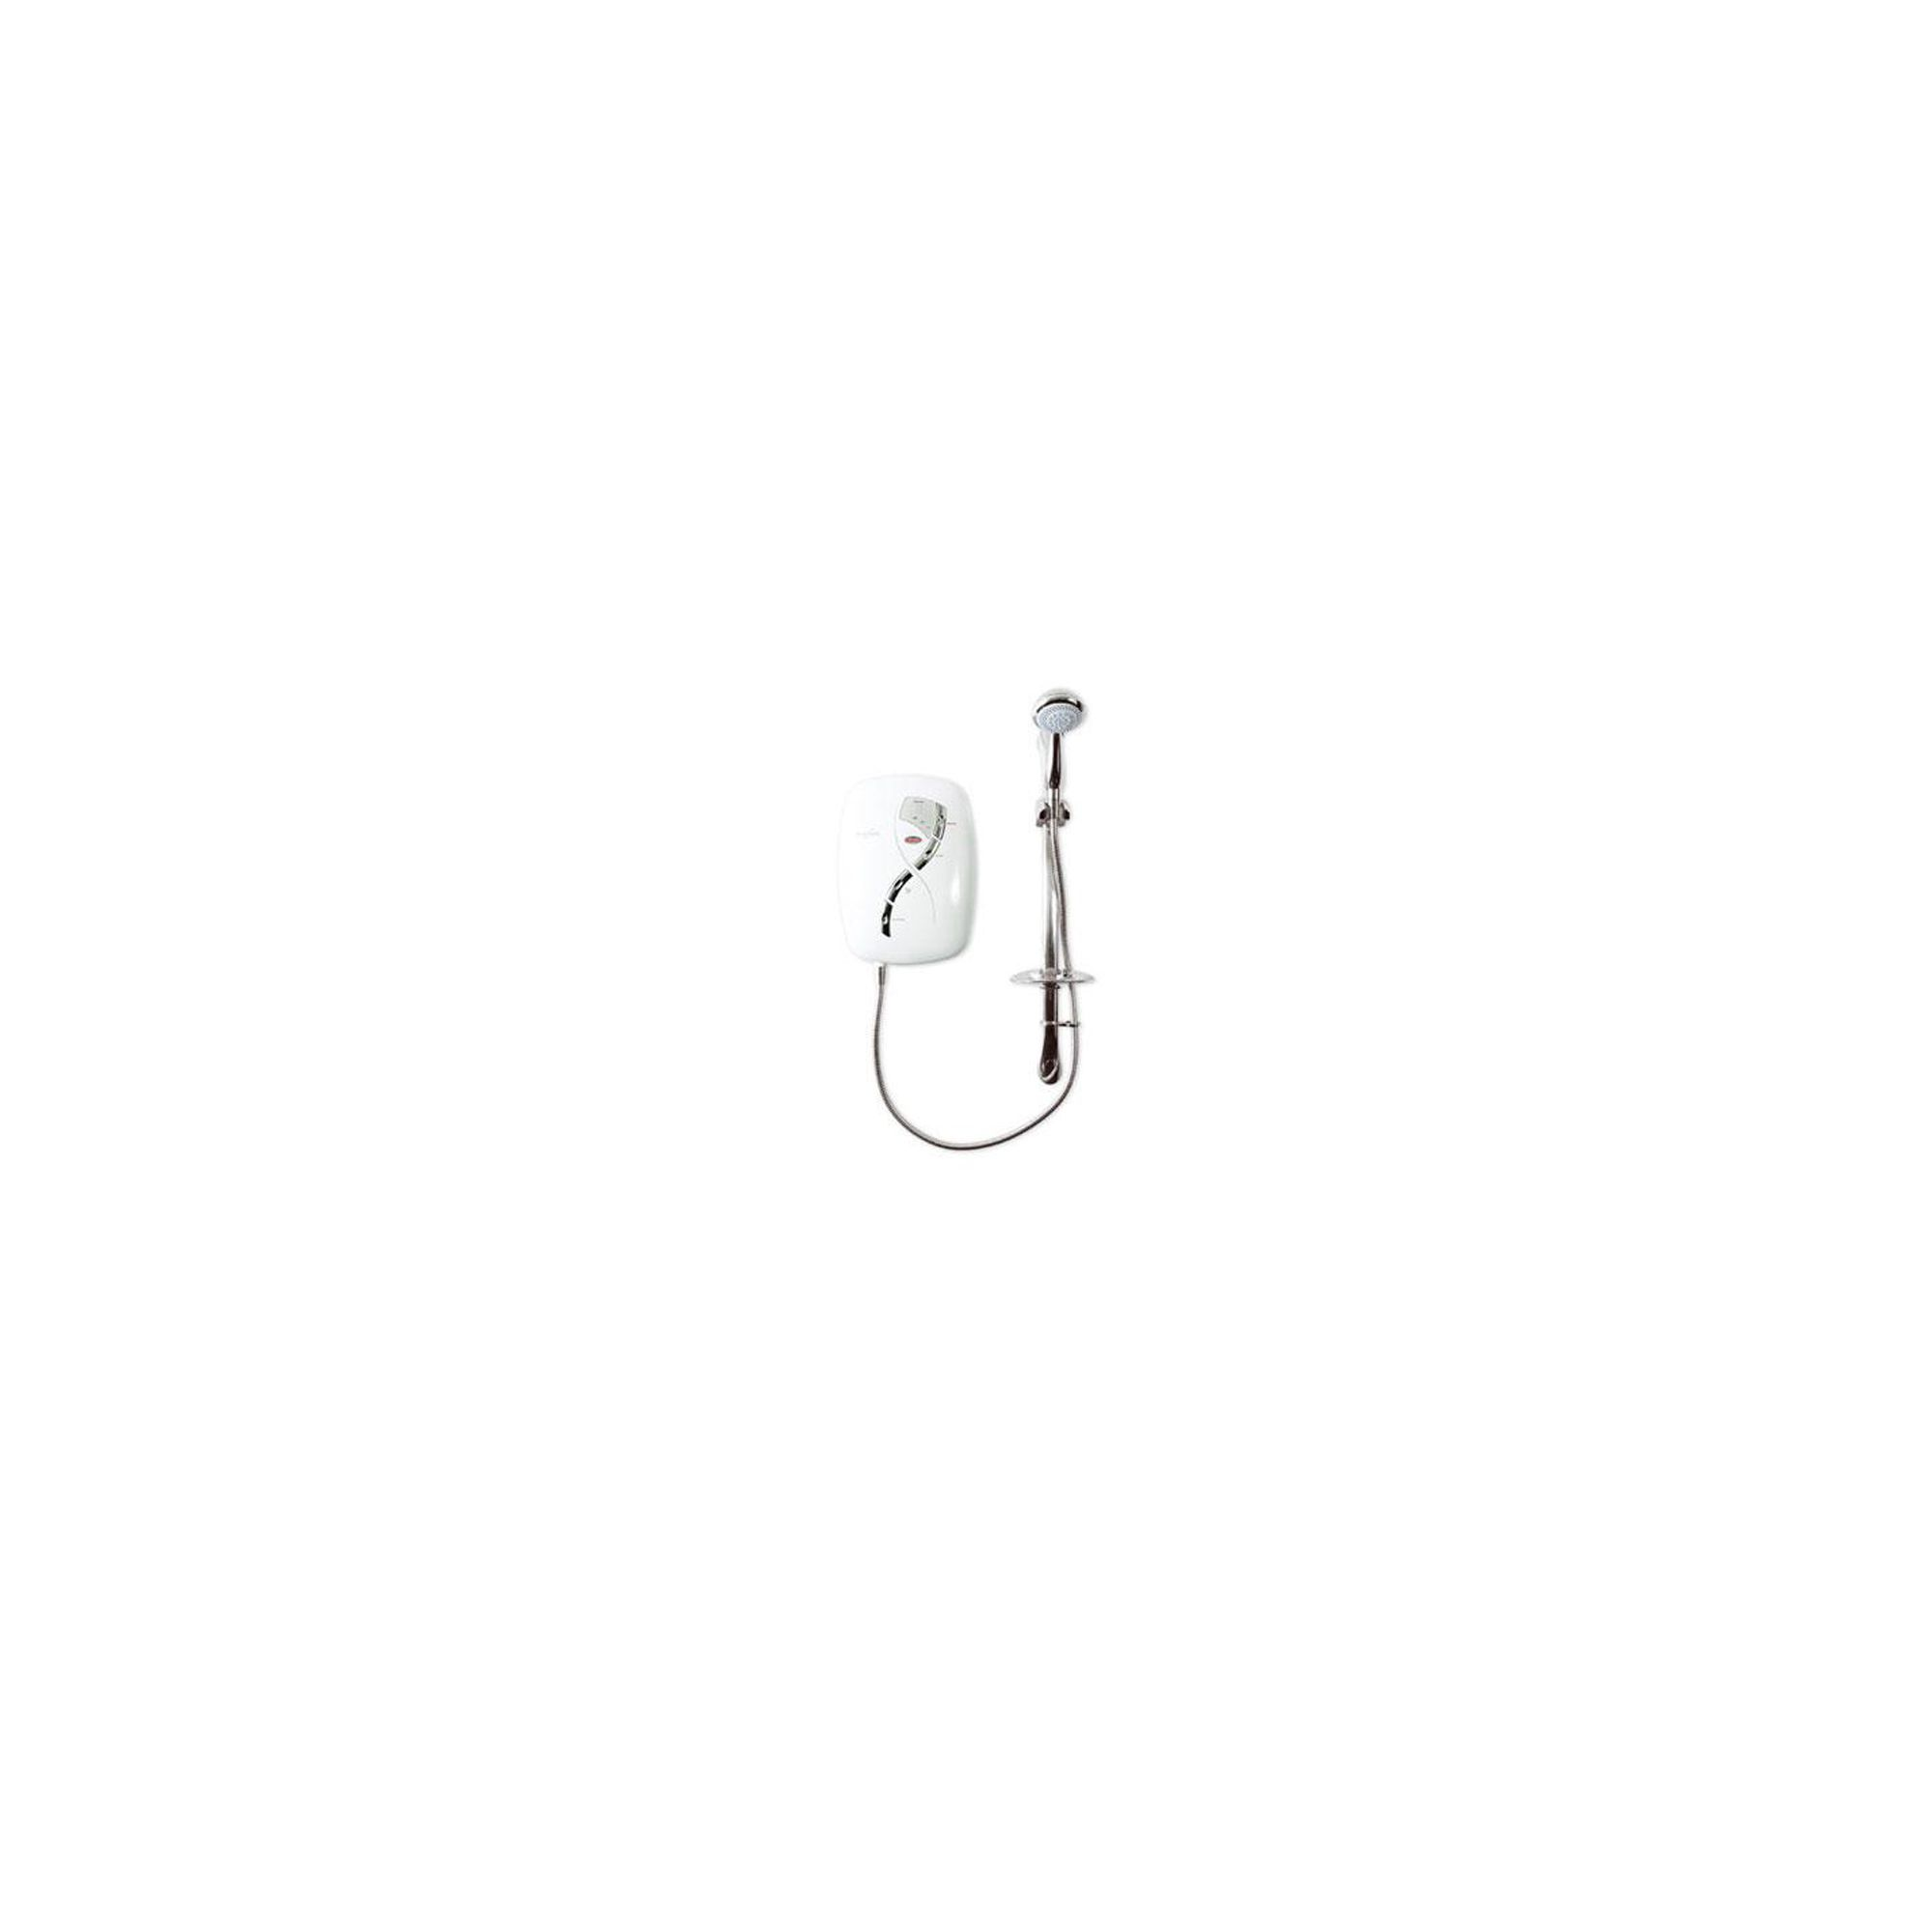 Redring Selectronic Shower Safe Electric Shower White/Chrome 8.5kW at Tesco Direct